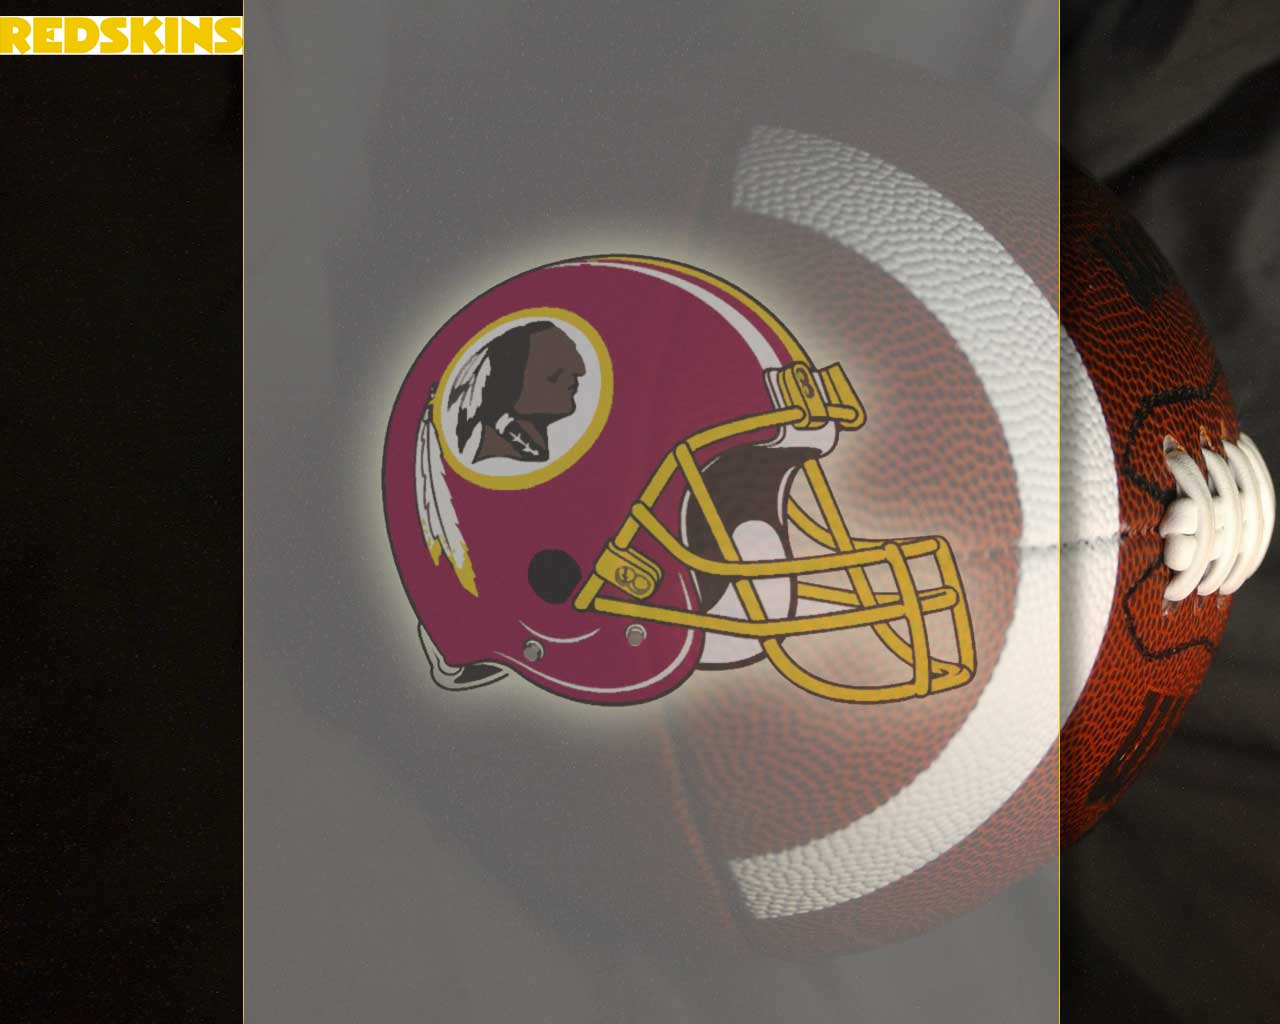 Washington Redskins desktop image Washington Redskins 1280x1024